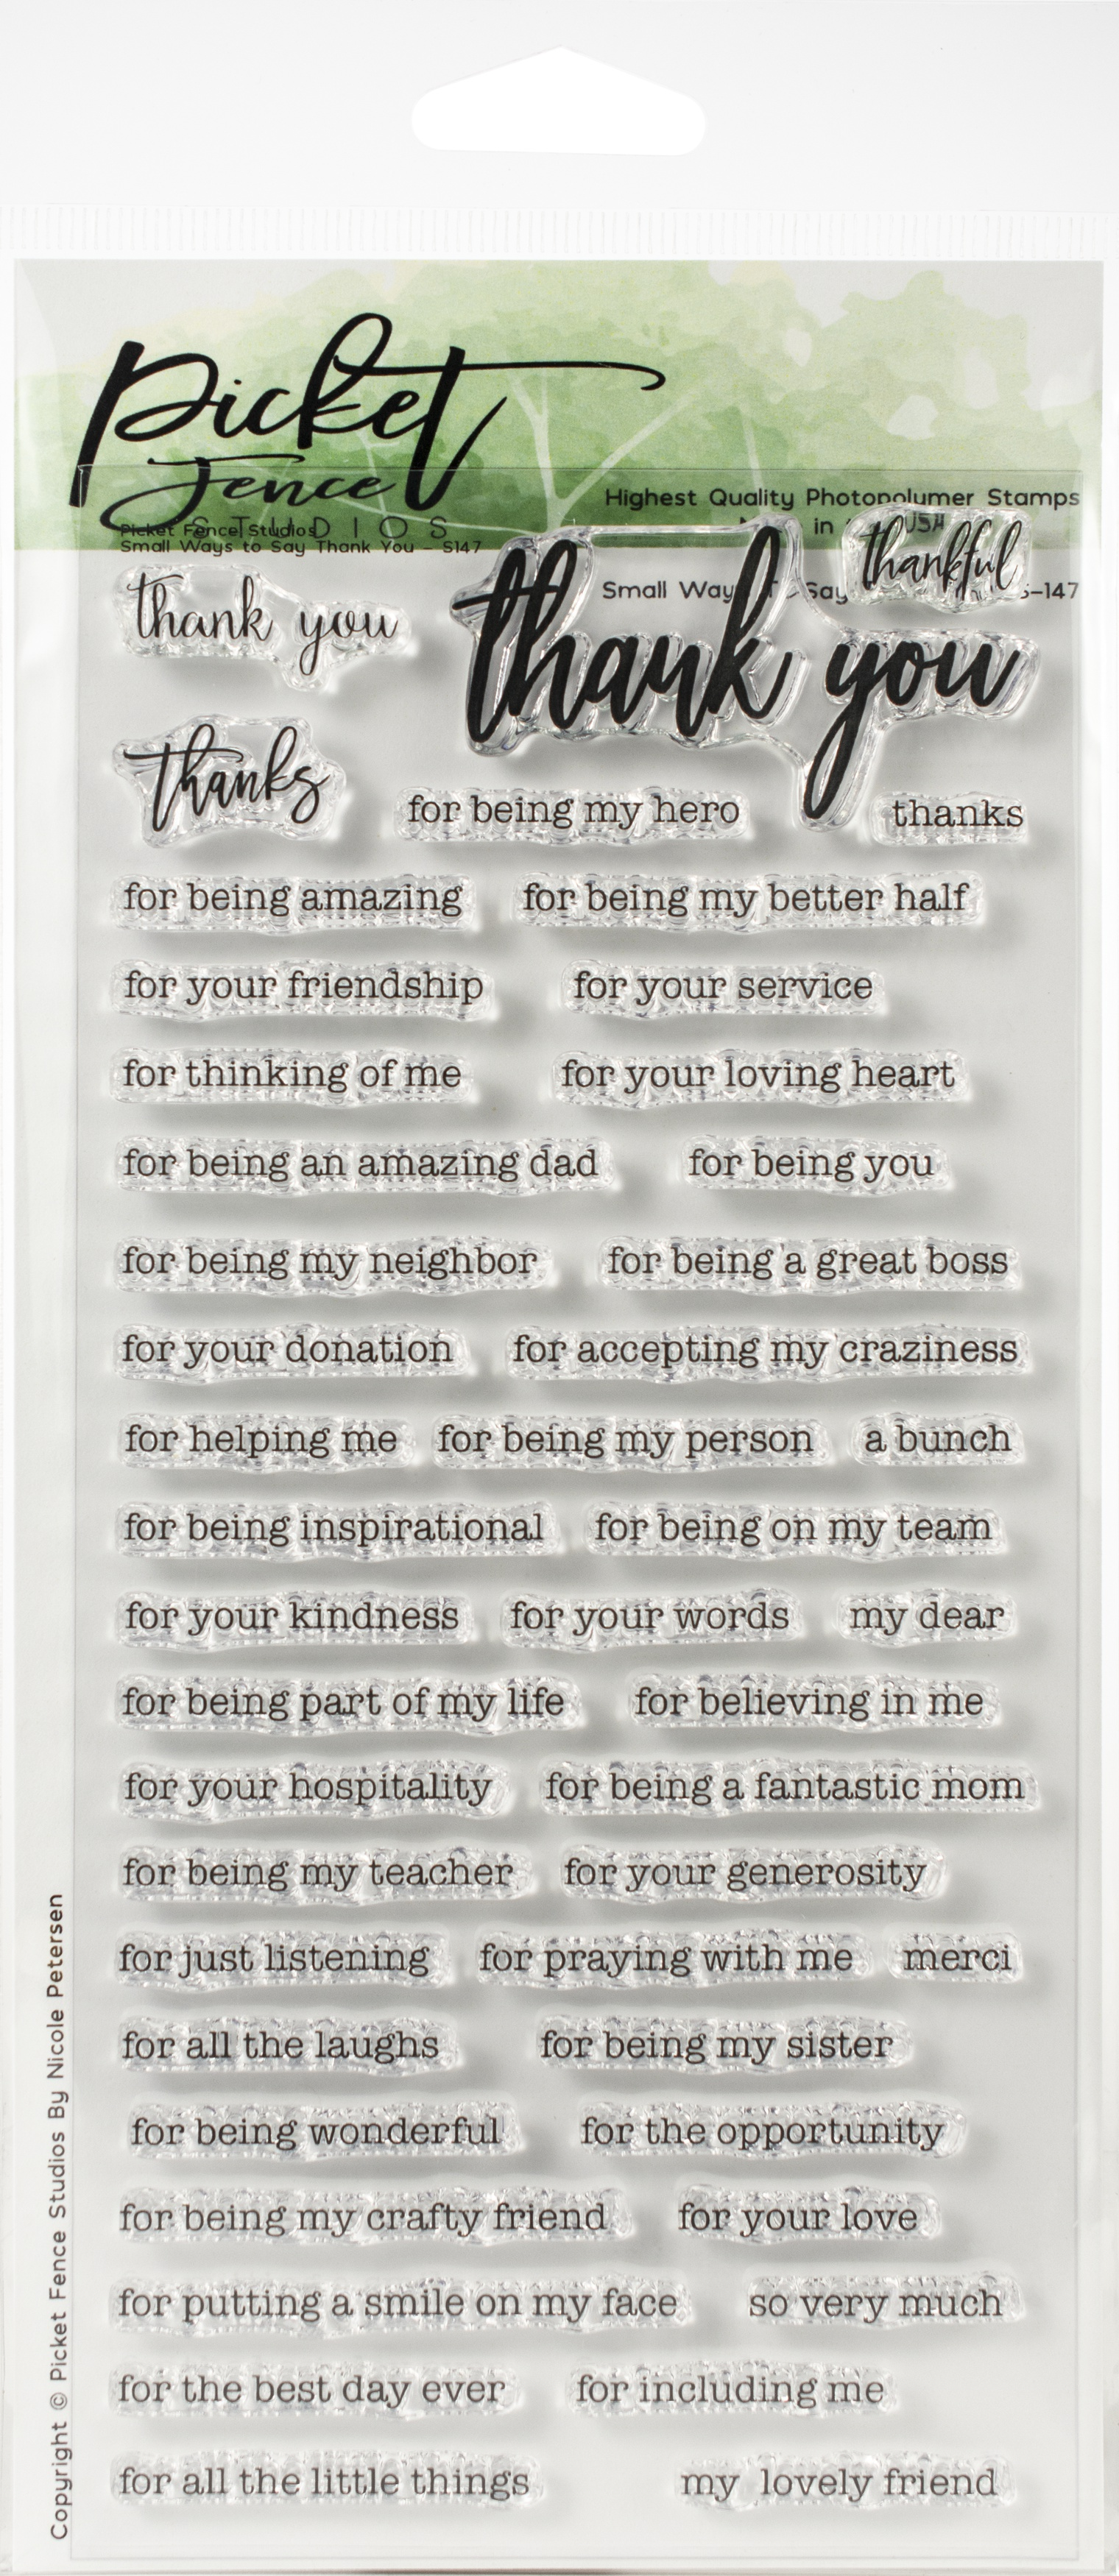 PICKET FENCE Small Ways to thank you STAMP